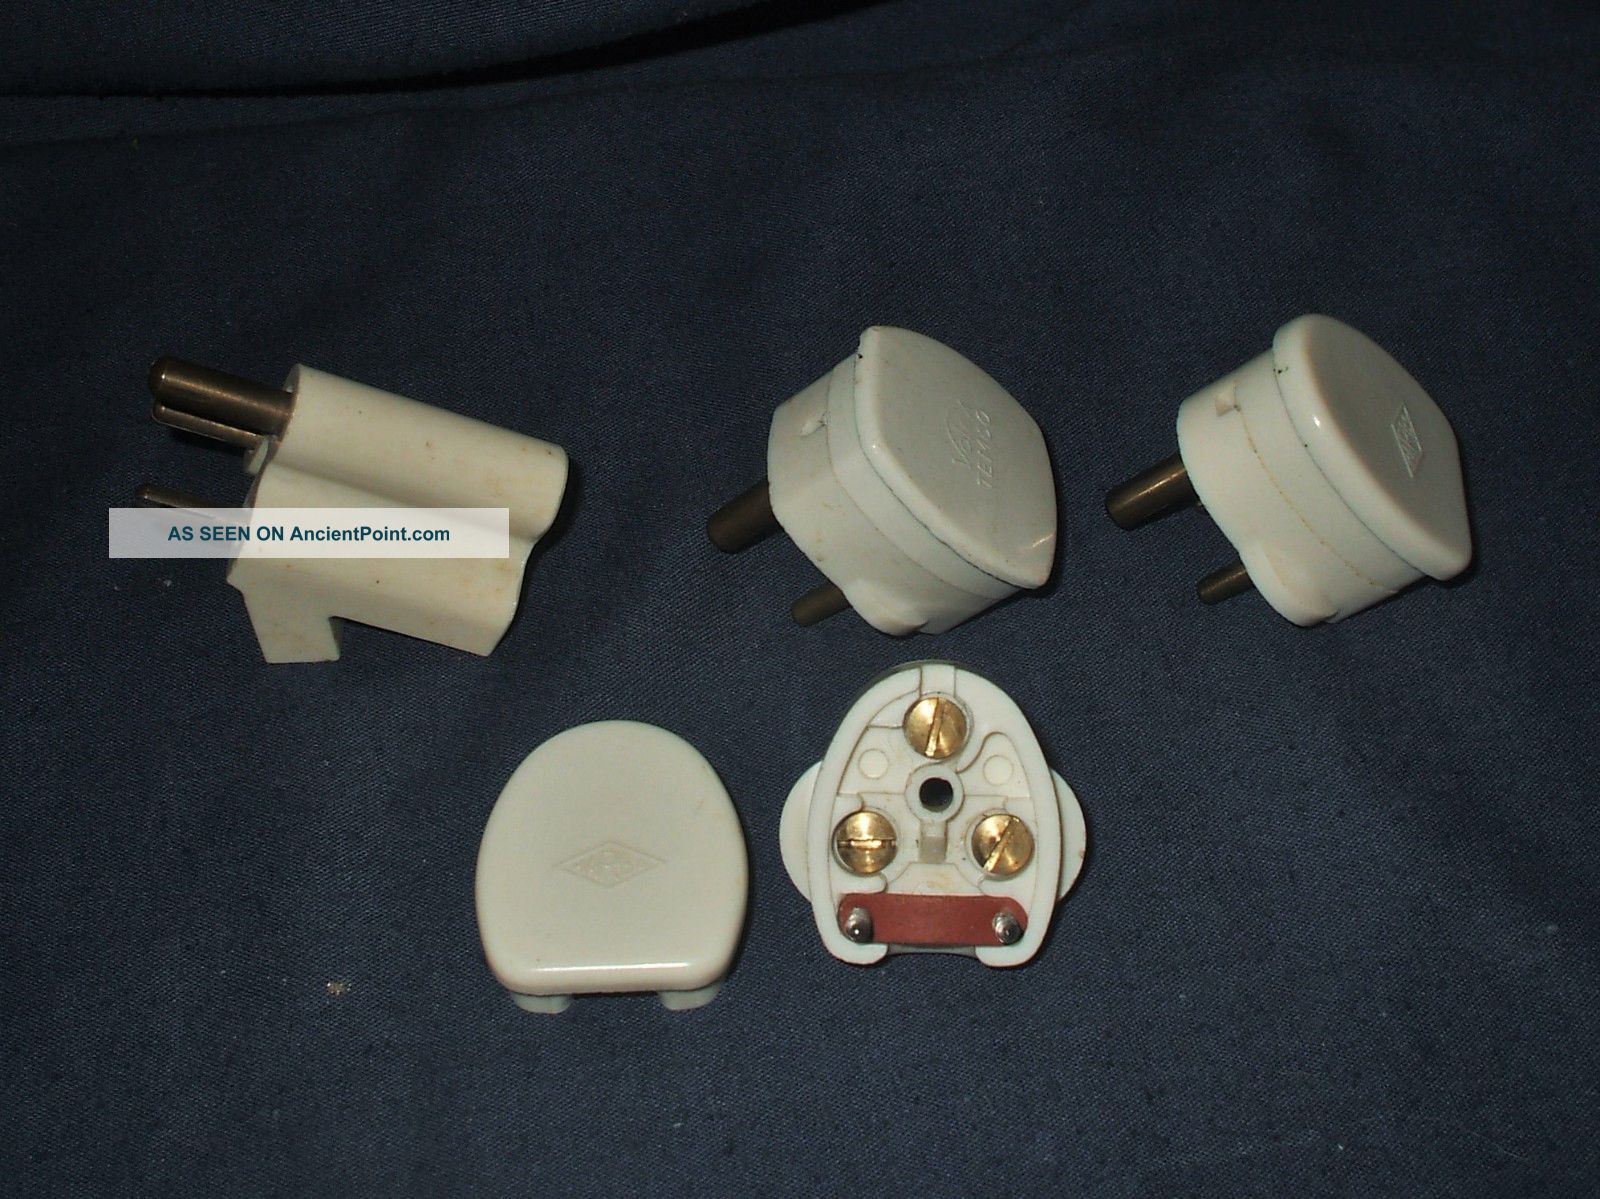 3 Vintage 2 Amp Plugs & A 2 Way Adaptor Light Switches photo